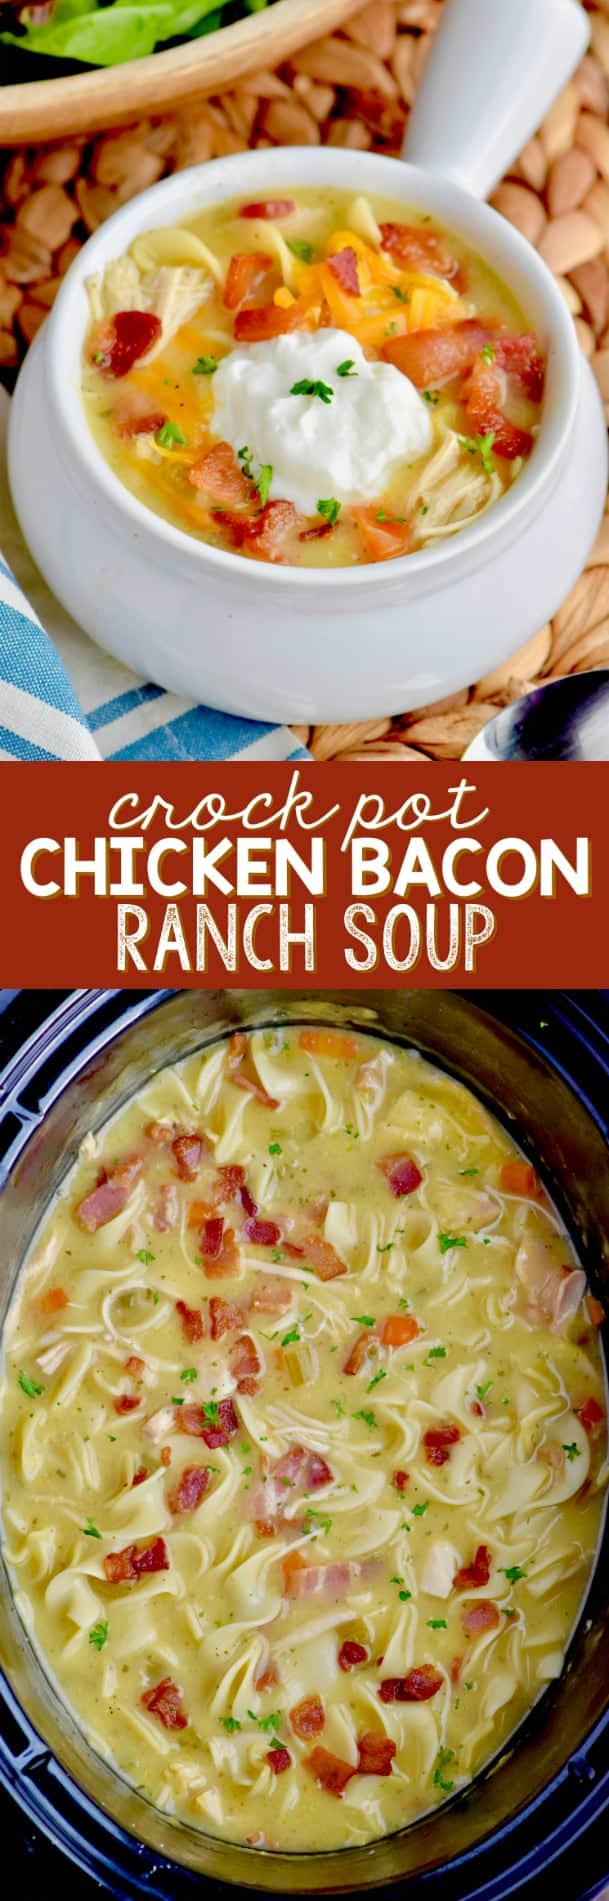 When life gets crazy, make this Crock Pot Chicken Bacon Ranch Soup! This soup takes so ten minutes to prepare!